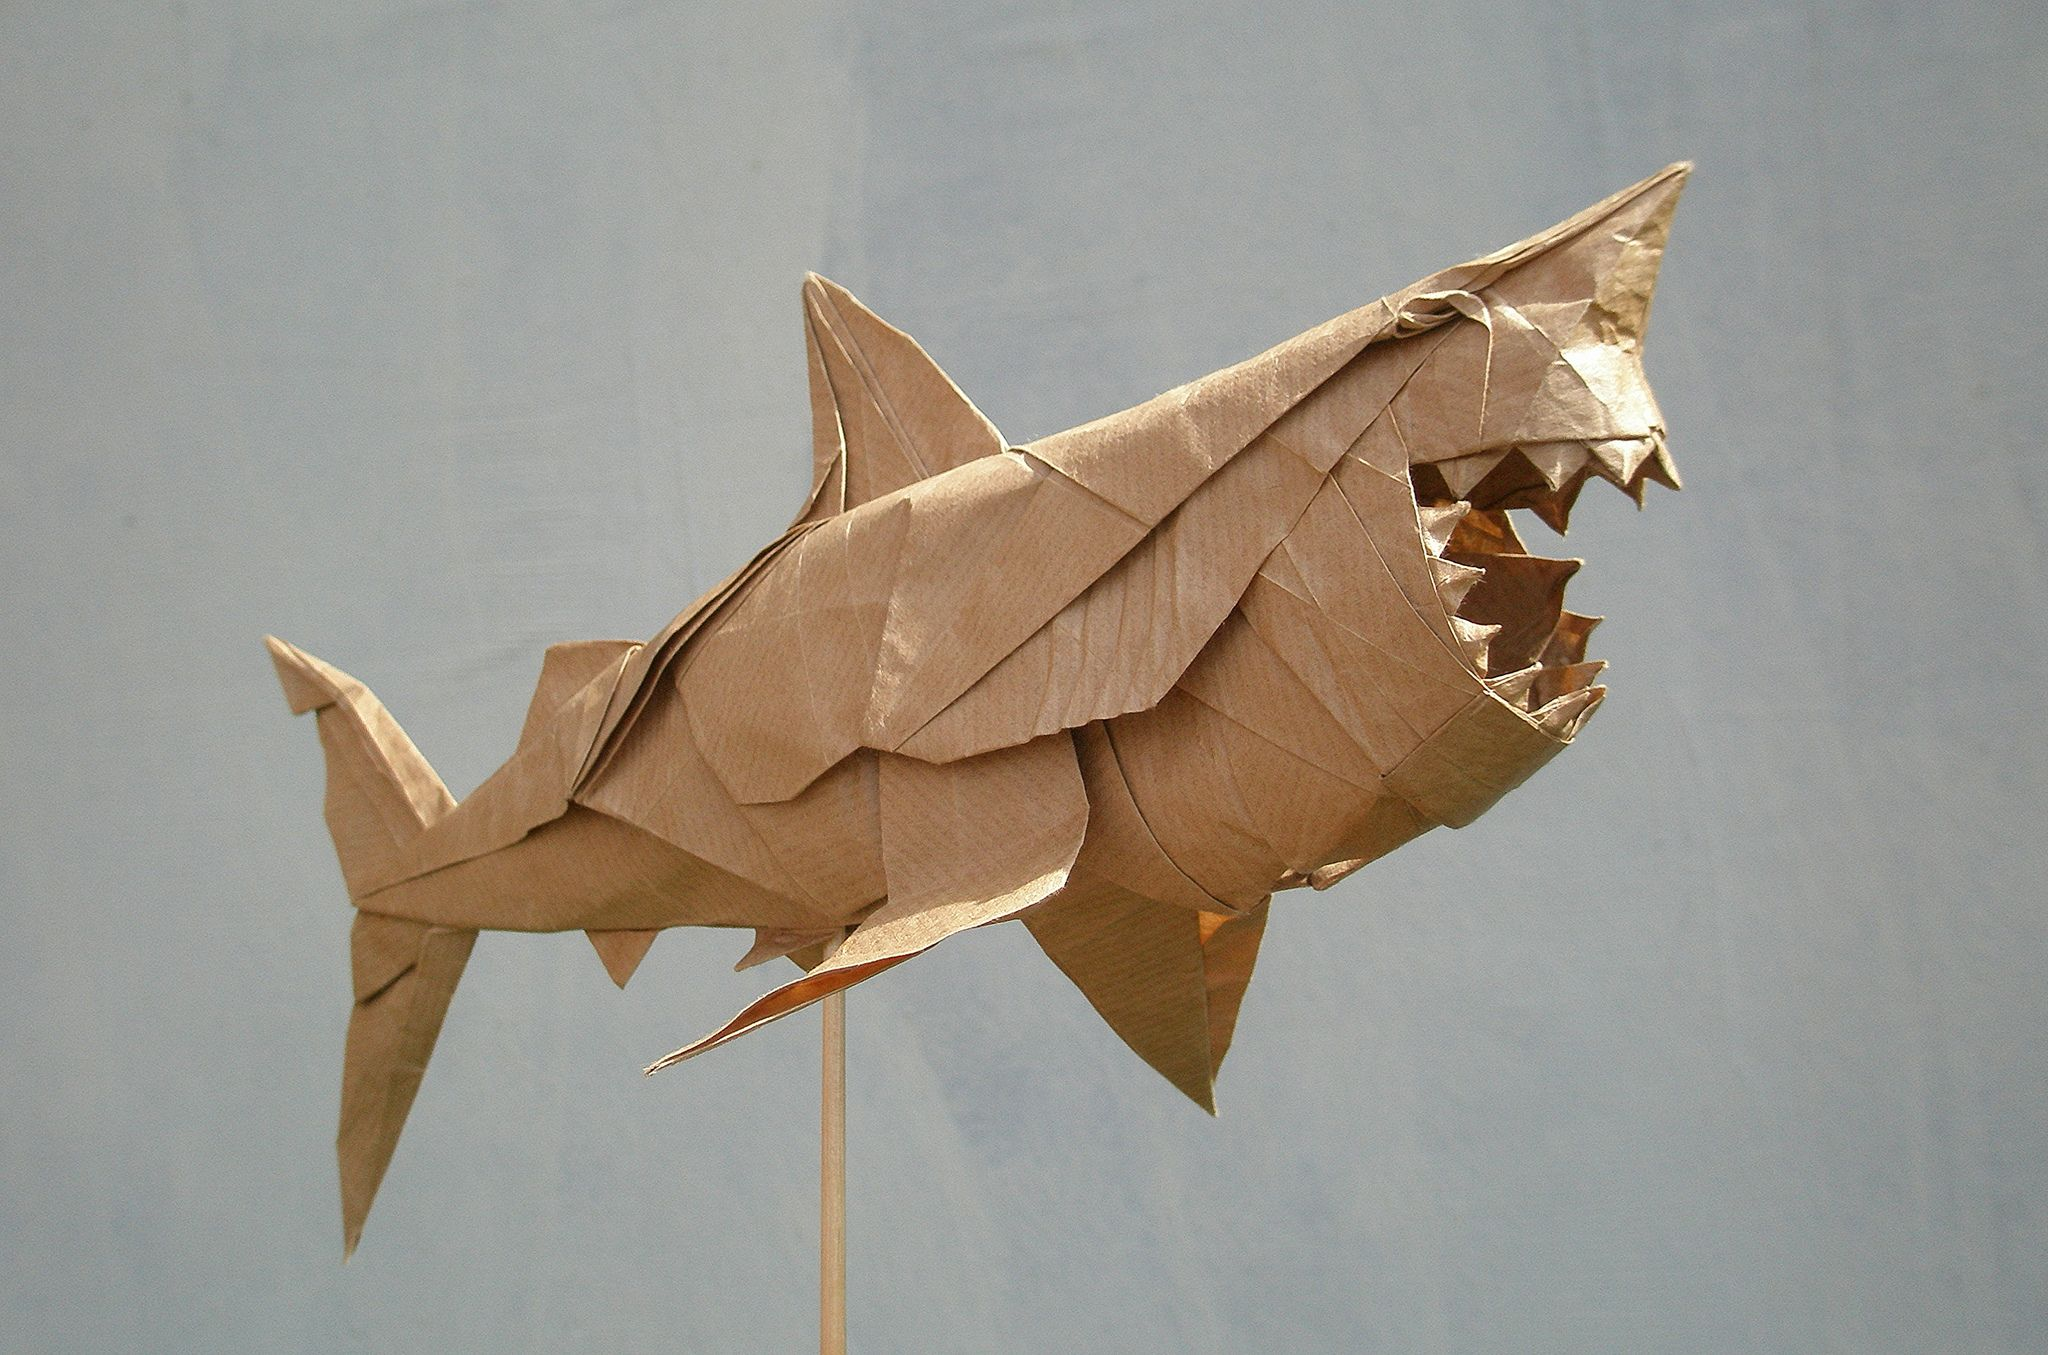 Great White Shark By Nguyn Hng Cng Folded By Artur Biernacki